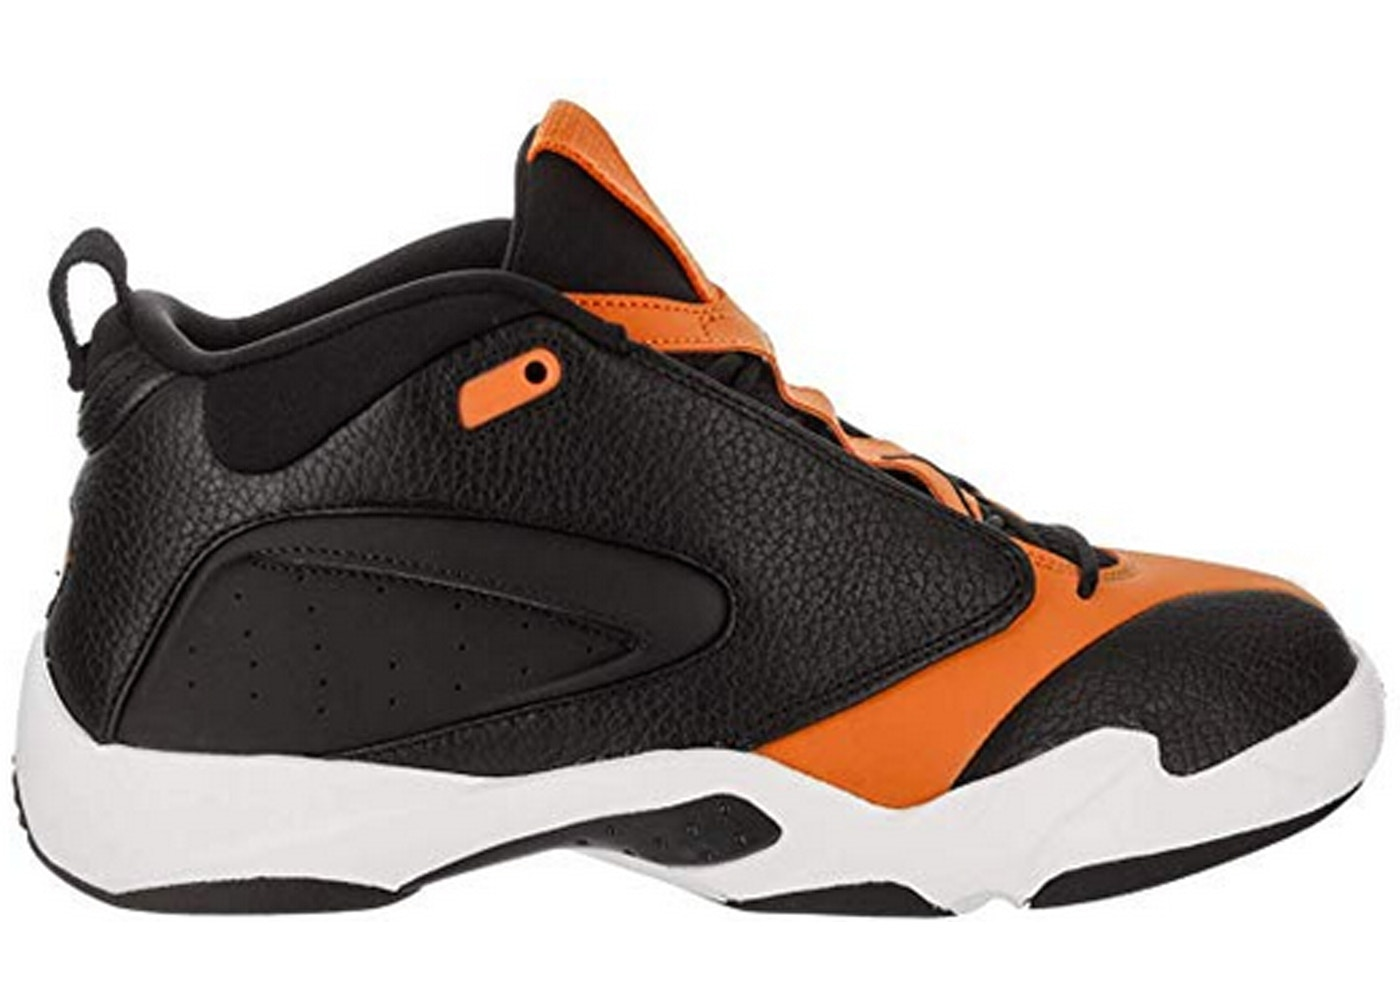 bfd3683c0d5 Jordan Jumpman Quick 23 Black Orange Peel - AH8109-008